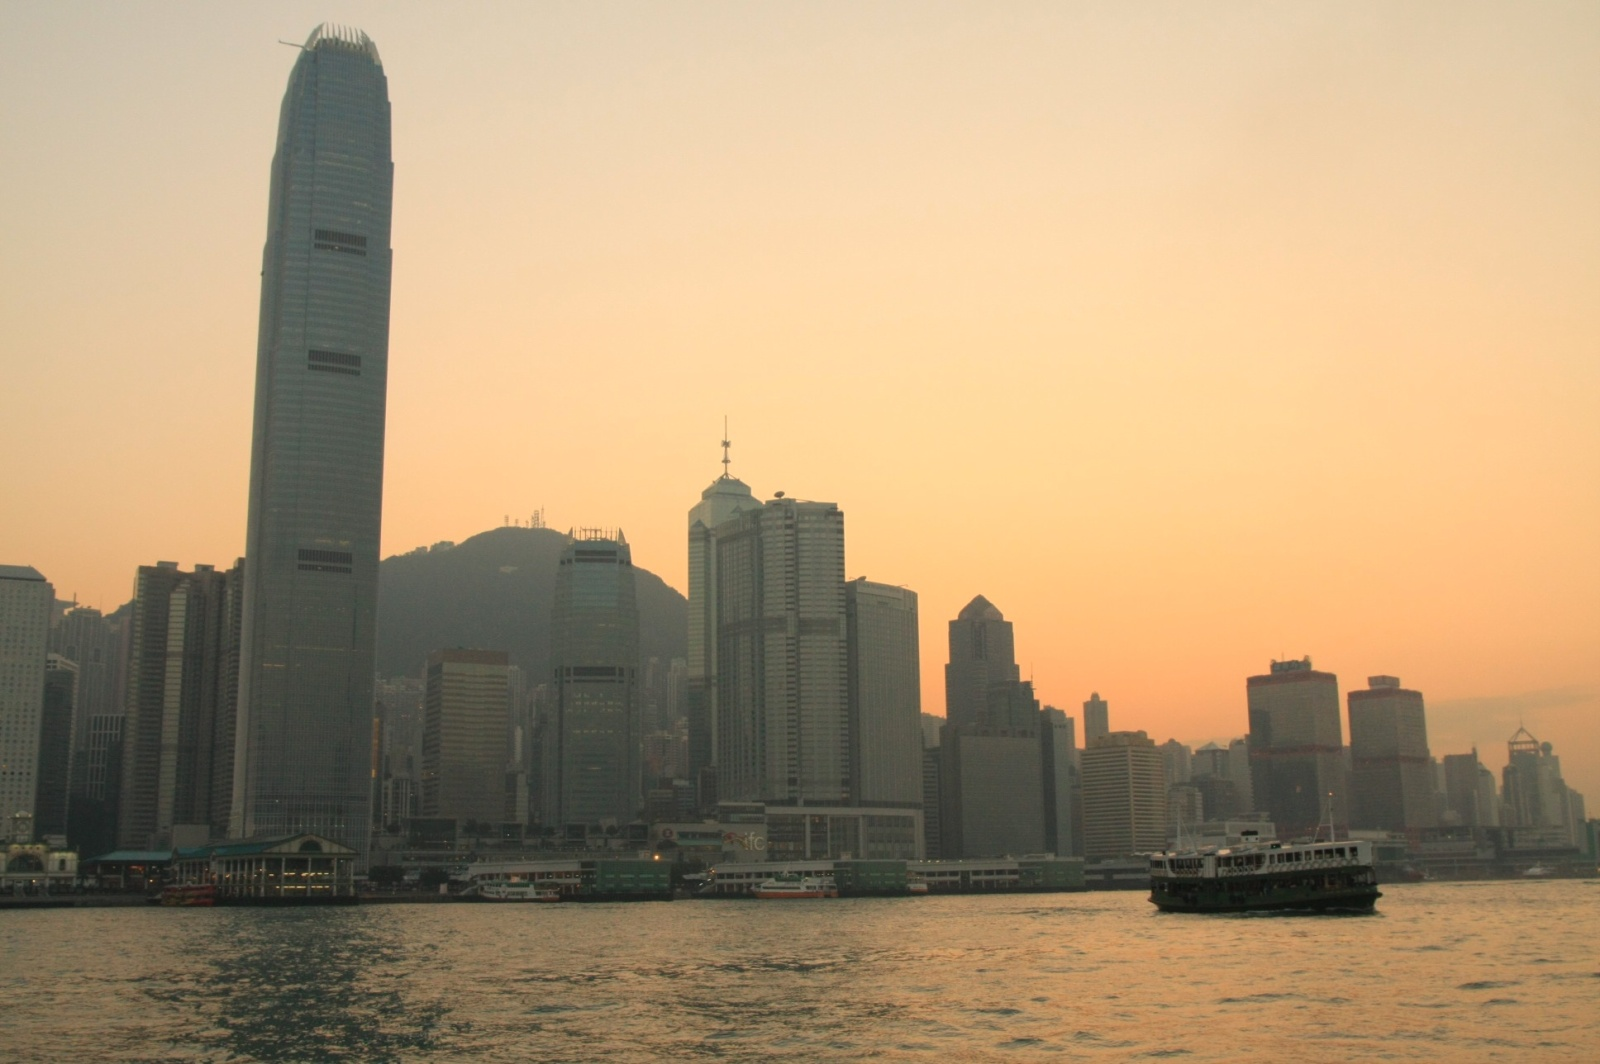 The infamous Star Ferry coming from Hong Kong Island